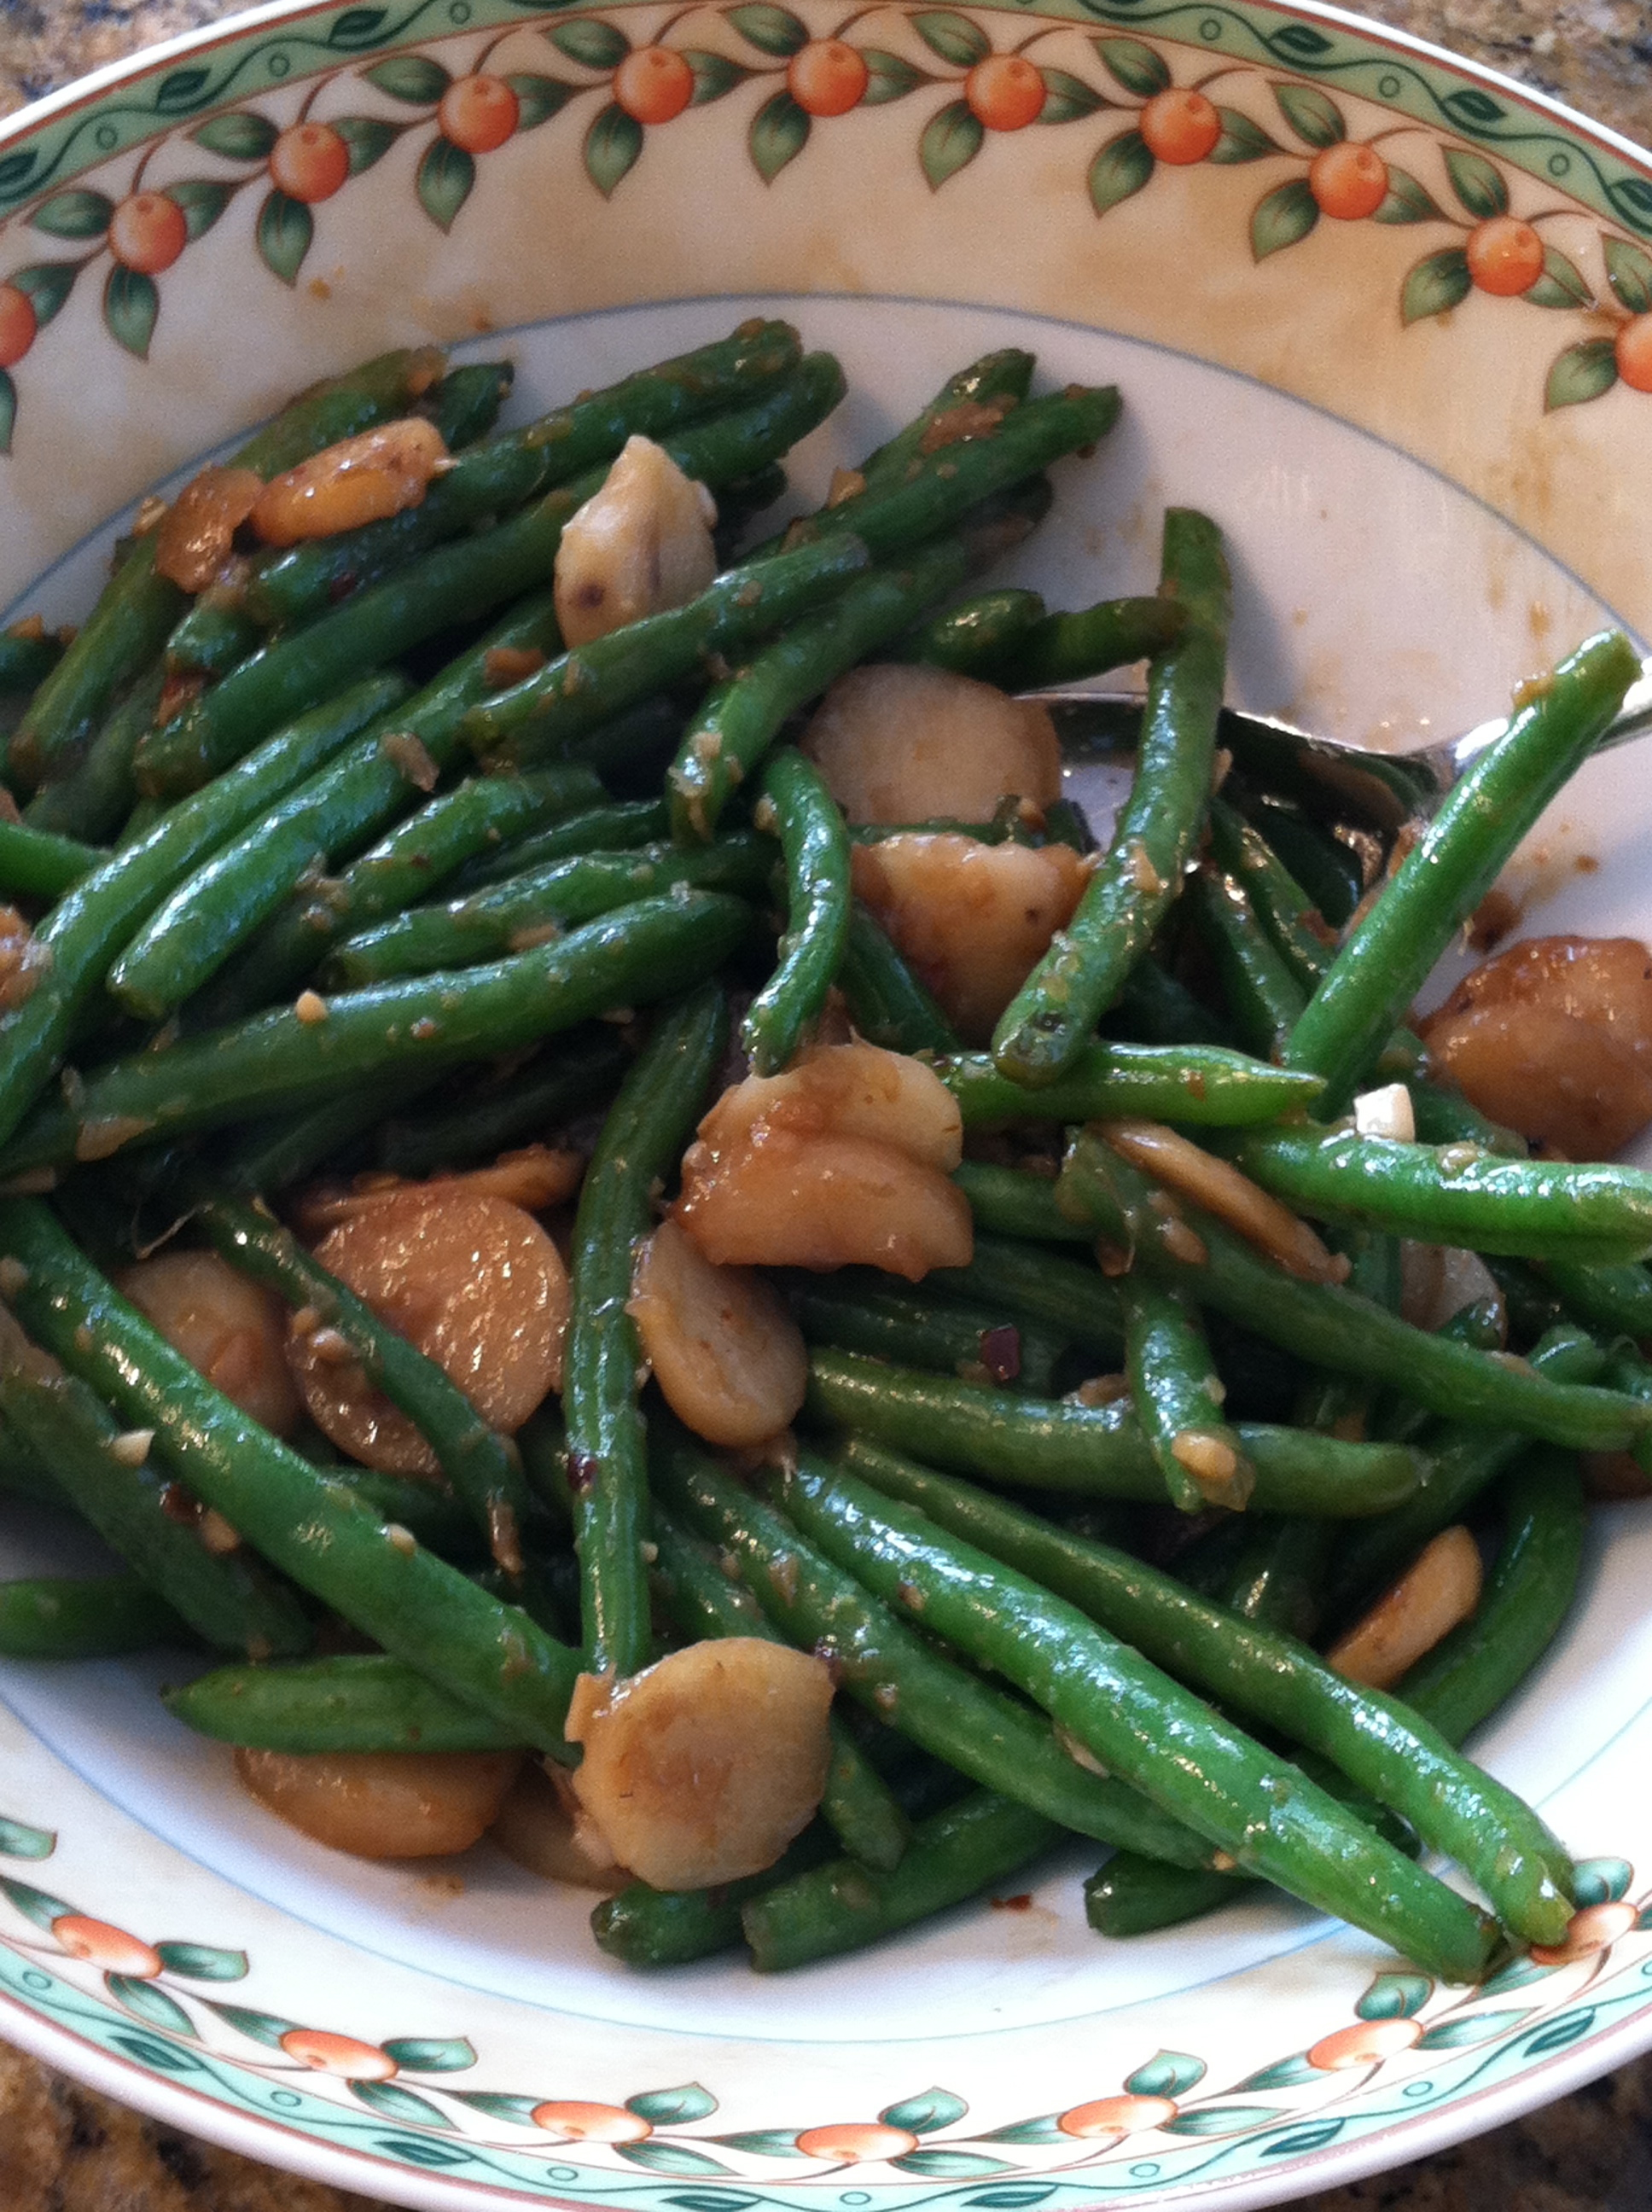 STIR-FRIED GREEN BEANS WITH GINGER AND WATER CHESTNUTS